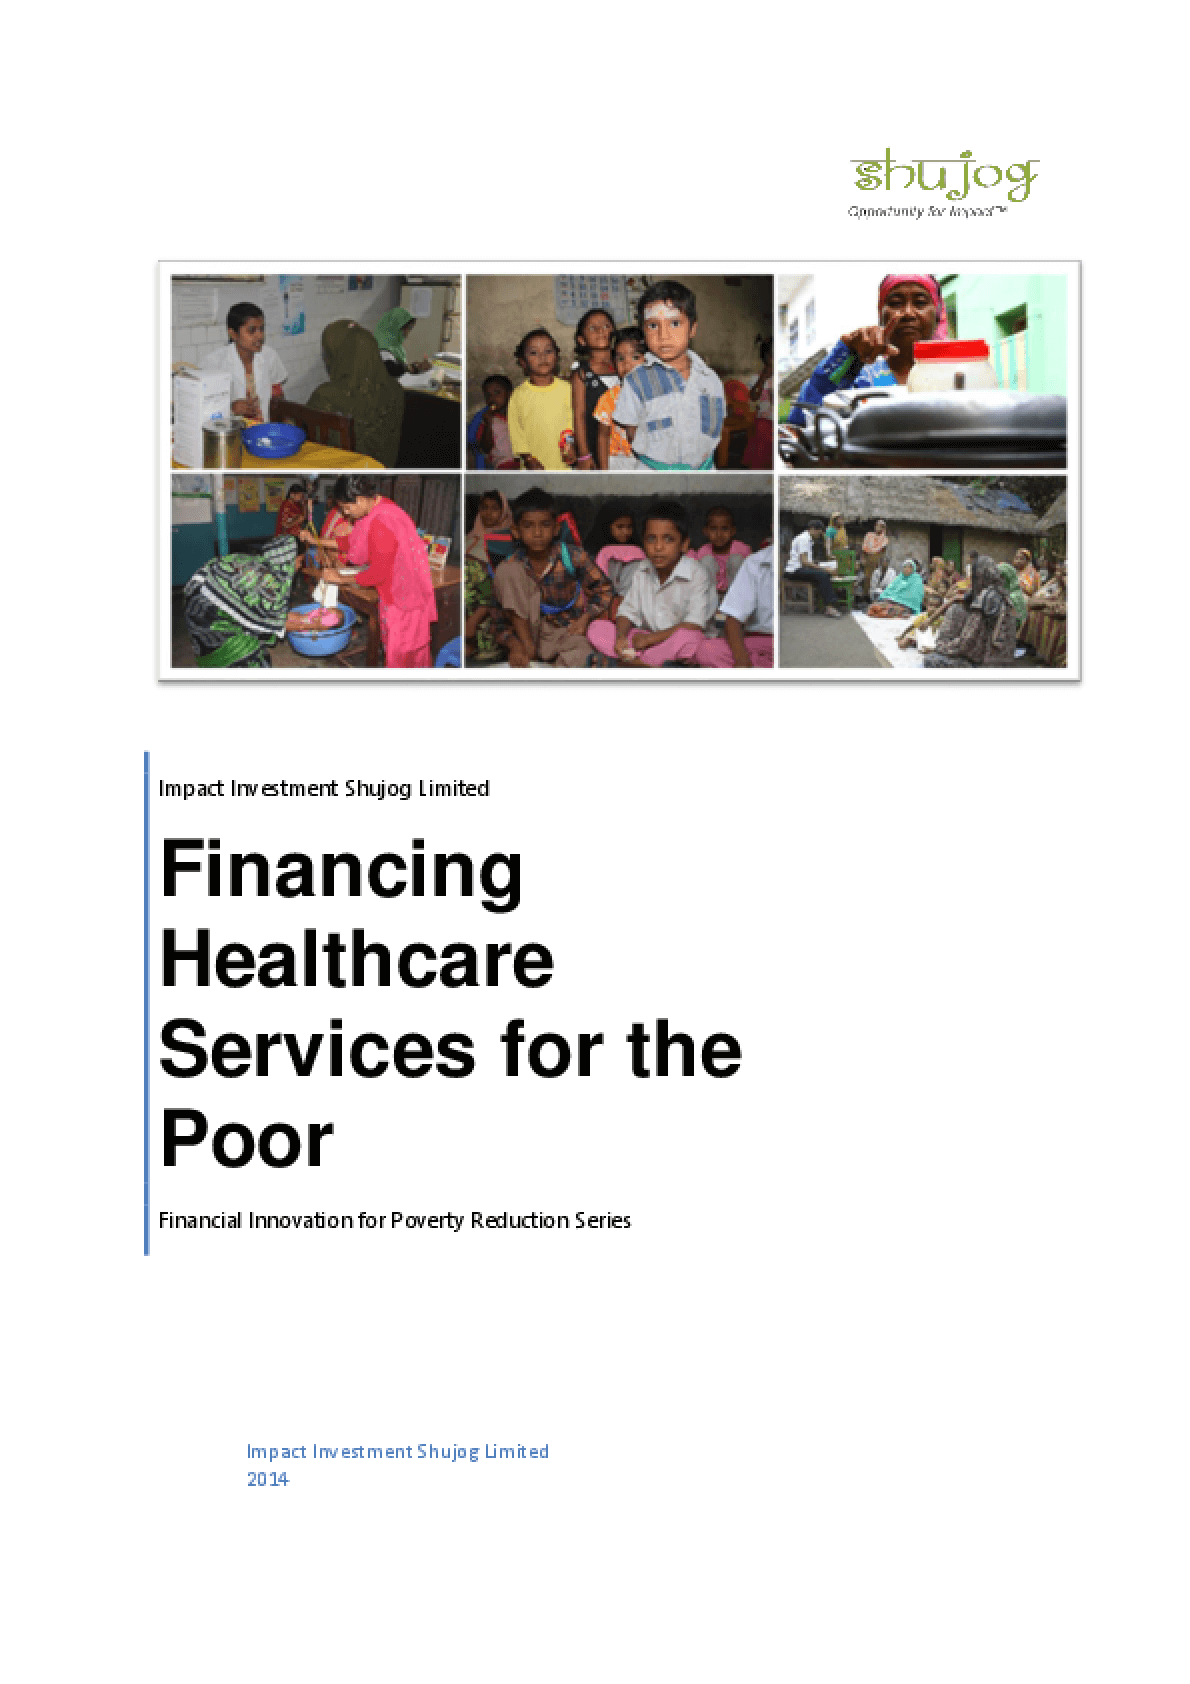 Financing Healthcare Services for the Poor